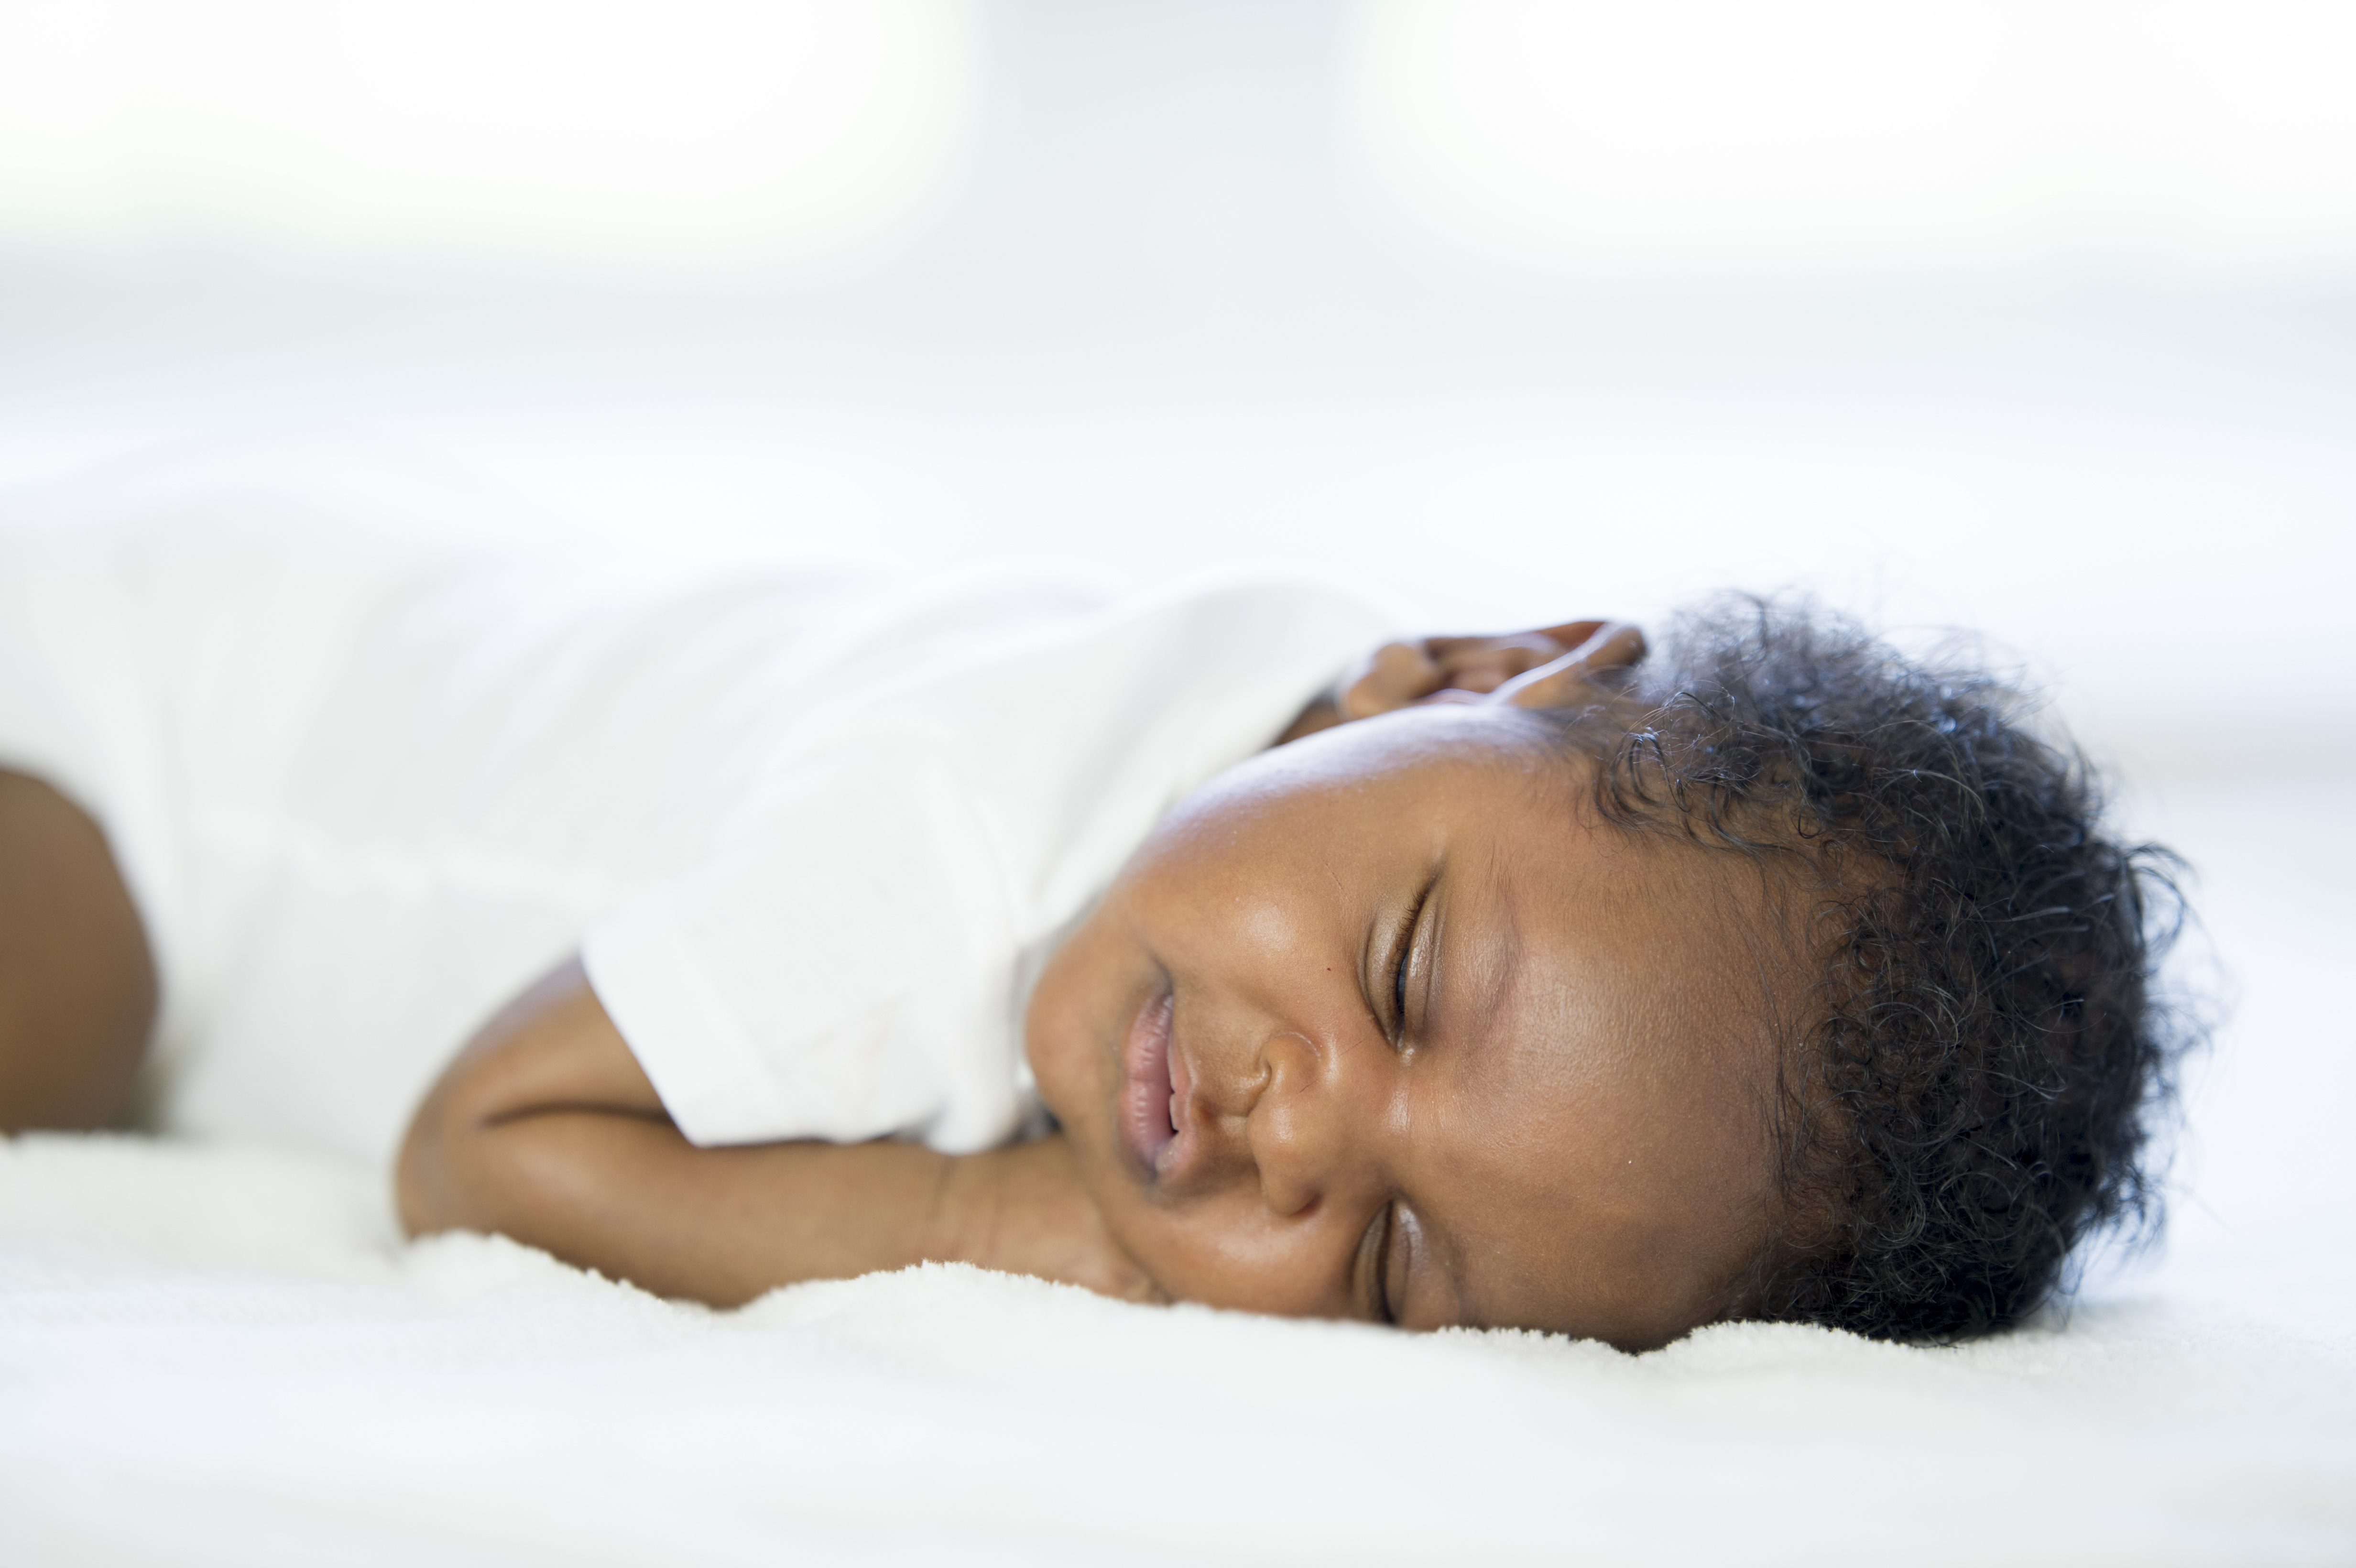 A newborn baby is lying on a while blanket and is sleeping peacefully.